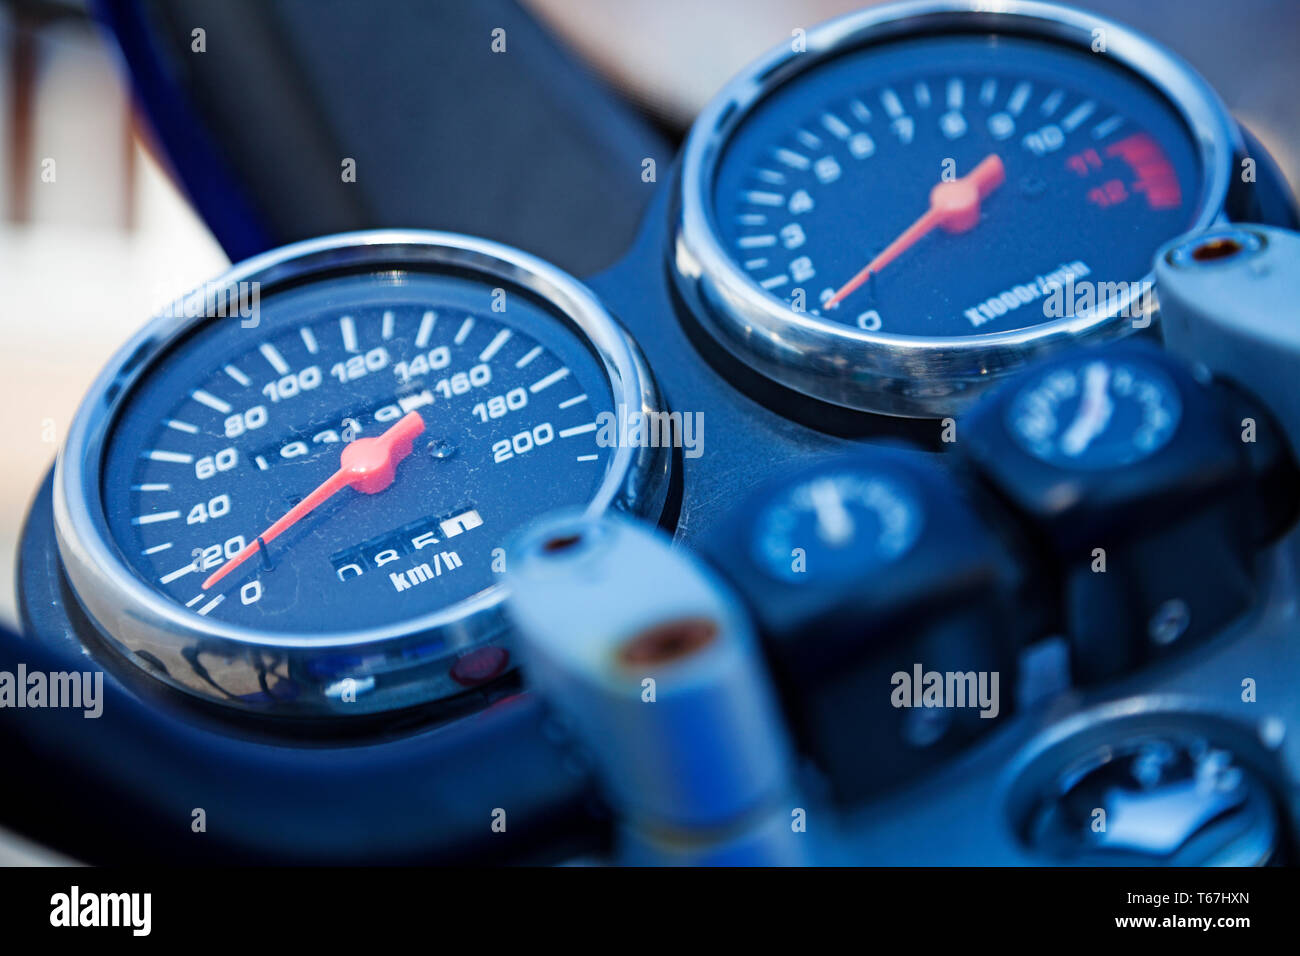 speed master on motorcycle Stock Photo: 244800829 - Alamy